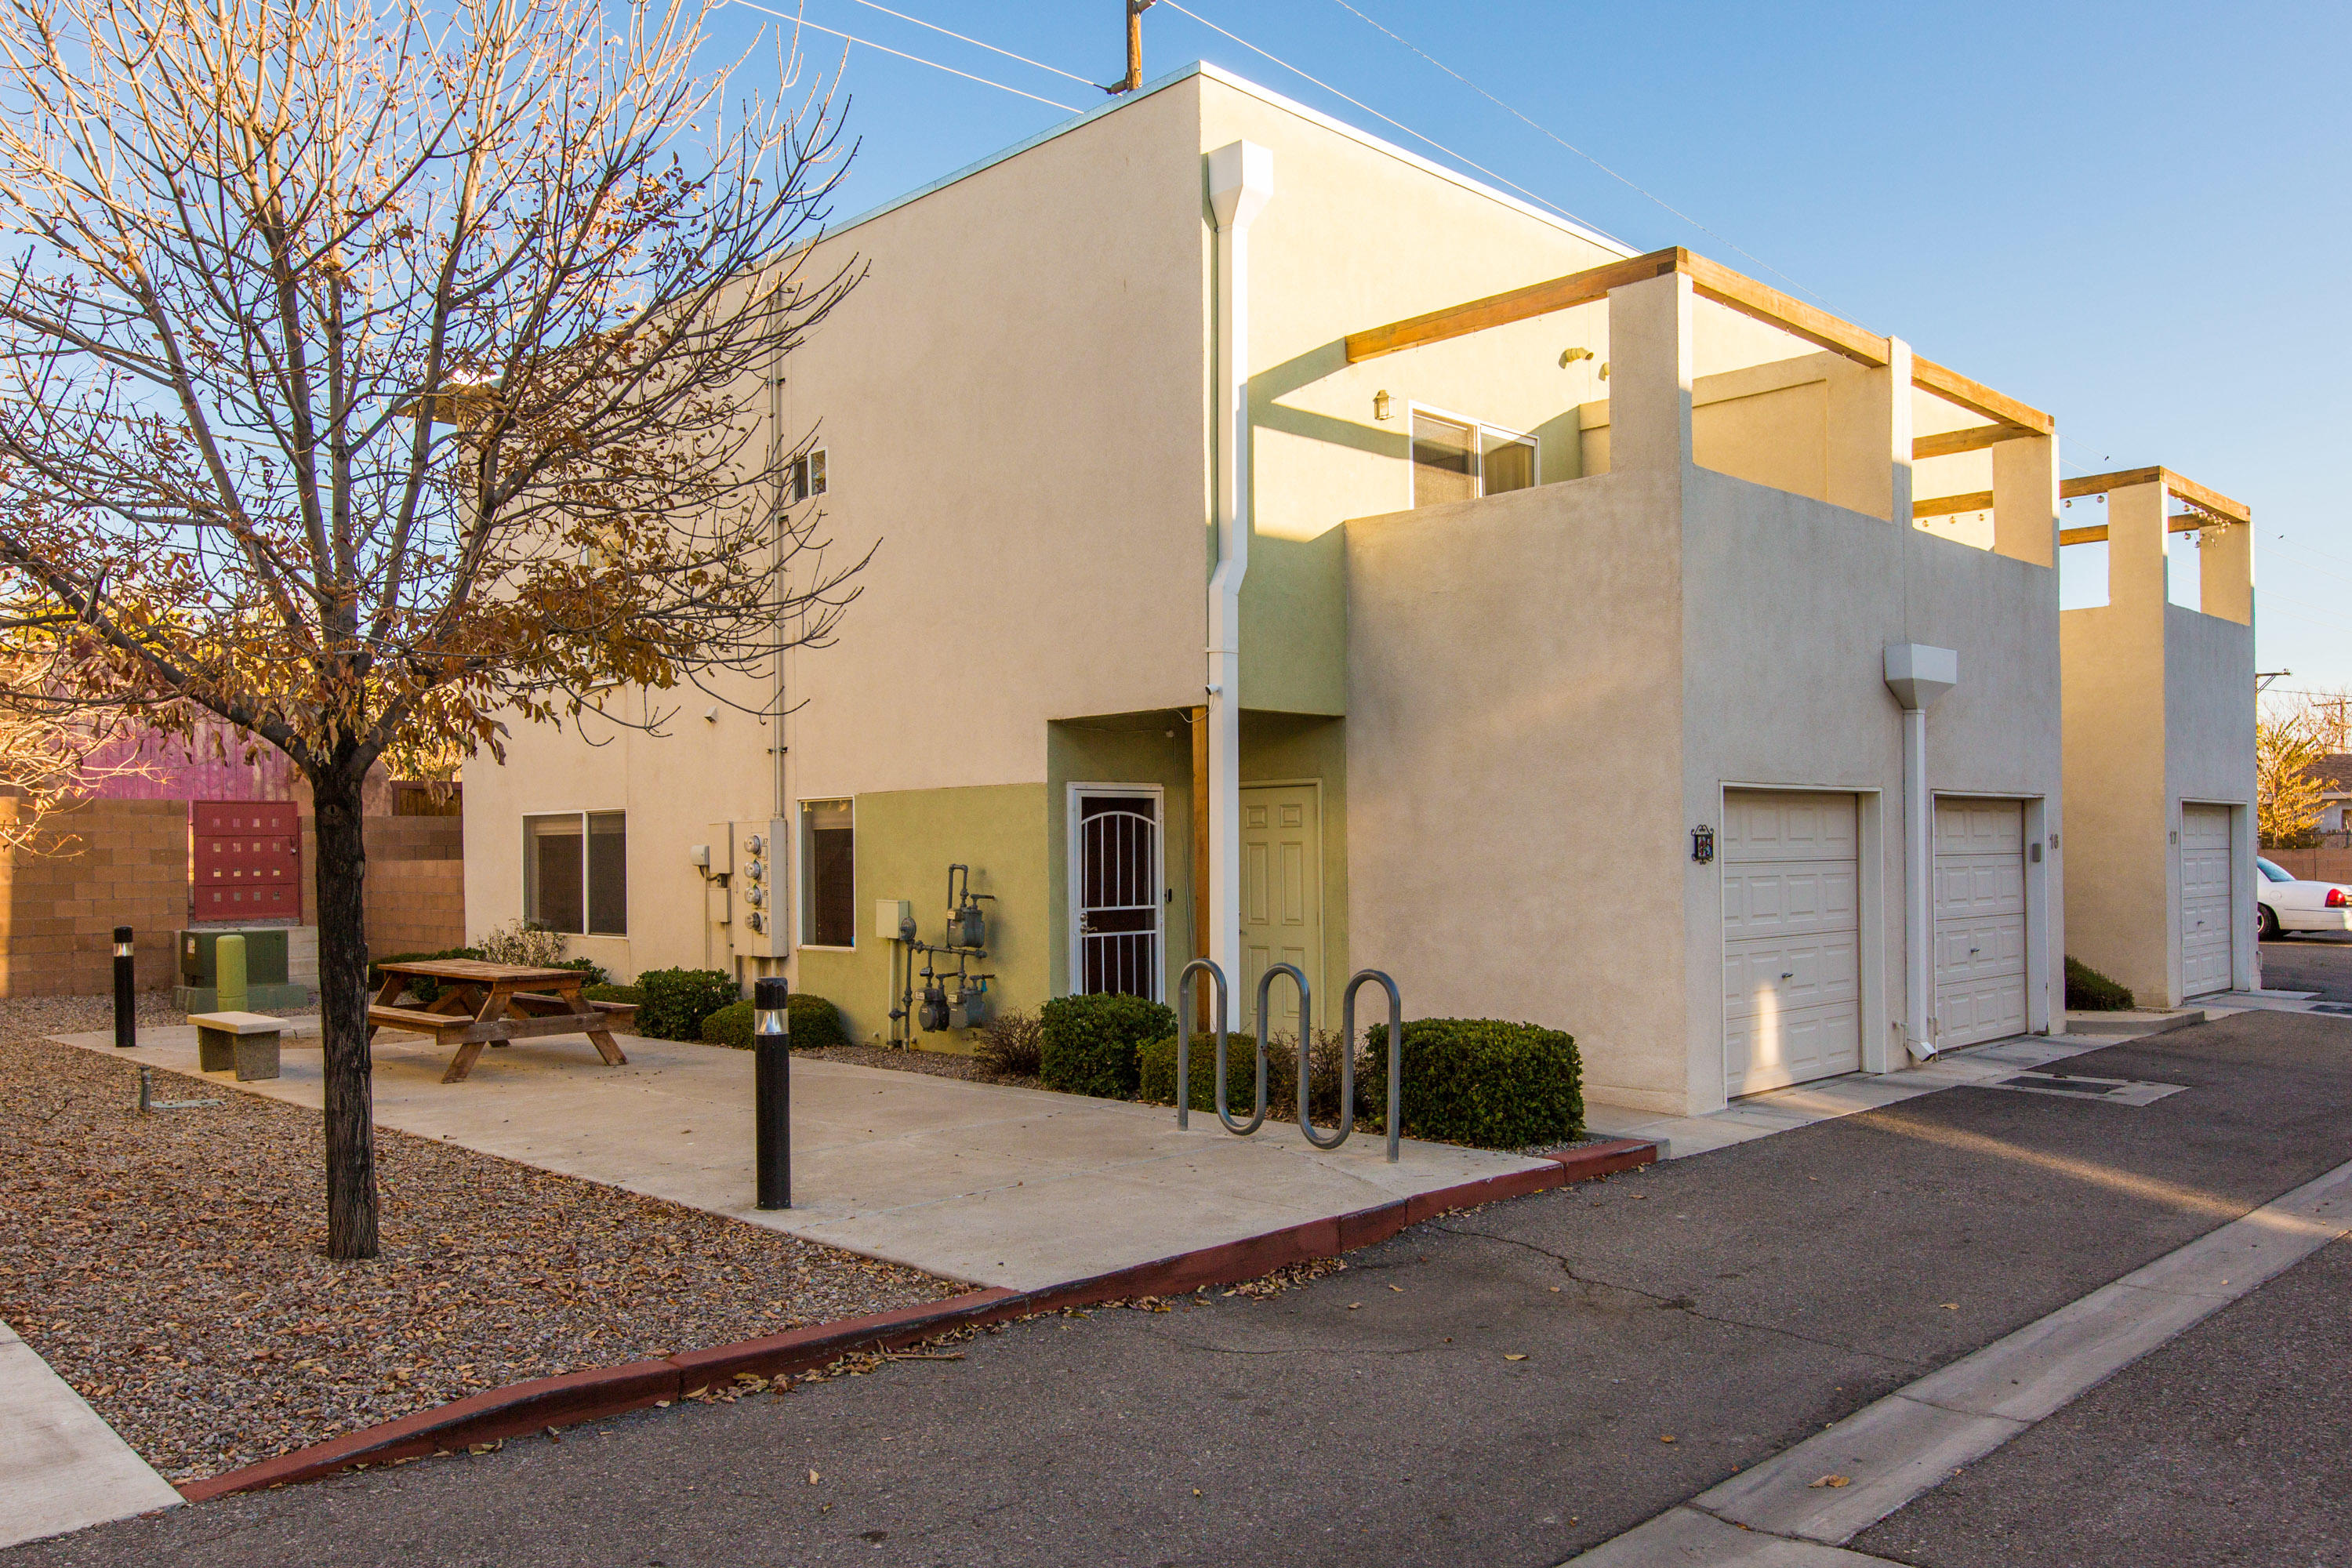 Light, airy, modern condo located near downtown/UNM/Nob Hill area. Fully equipped Kitchen. Bedrooms located upstairs with jack and Jill bath. Balcony off Owners suite. Private walled backyard. 1 car garage included. End unit, has large north facing window.